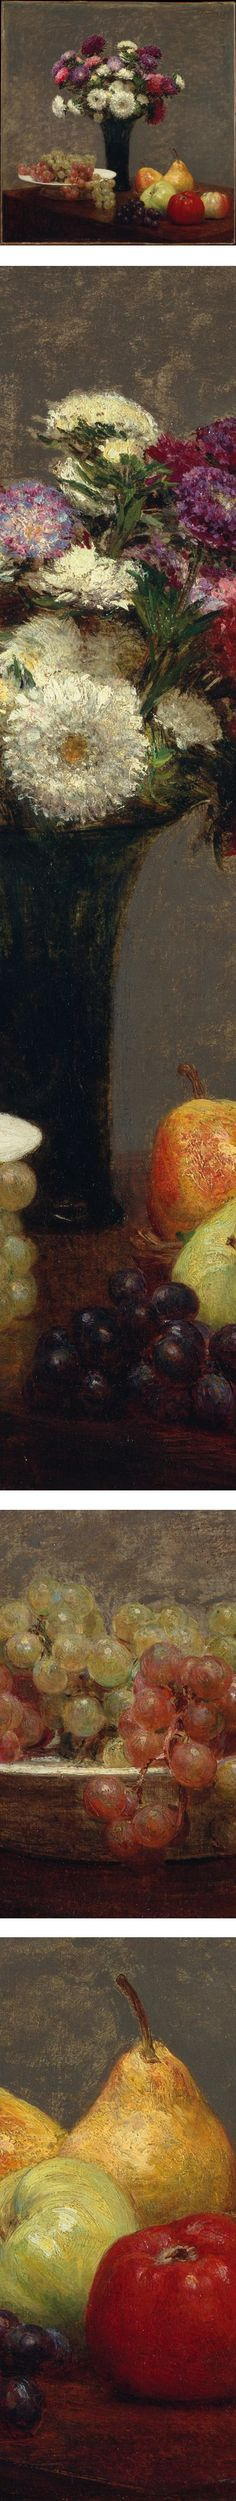 Eye Candy for Today: Fantin-Latour asters and fruit